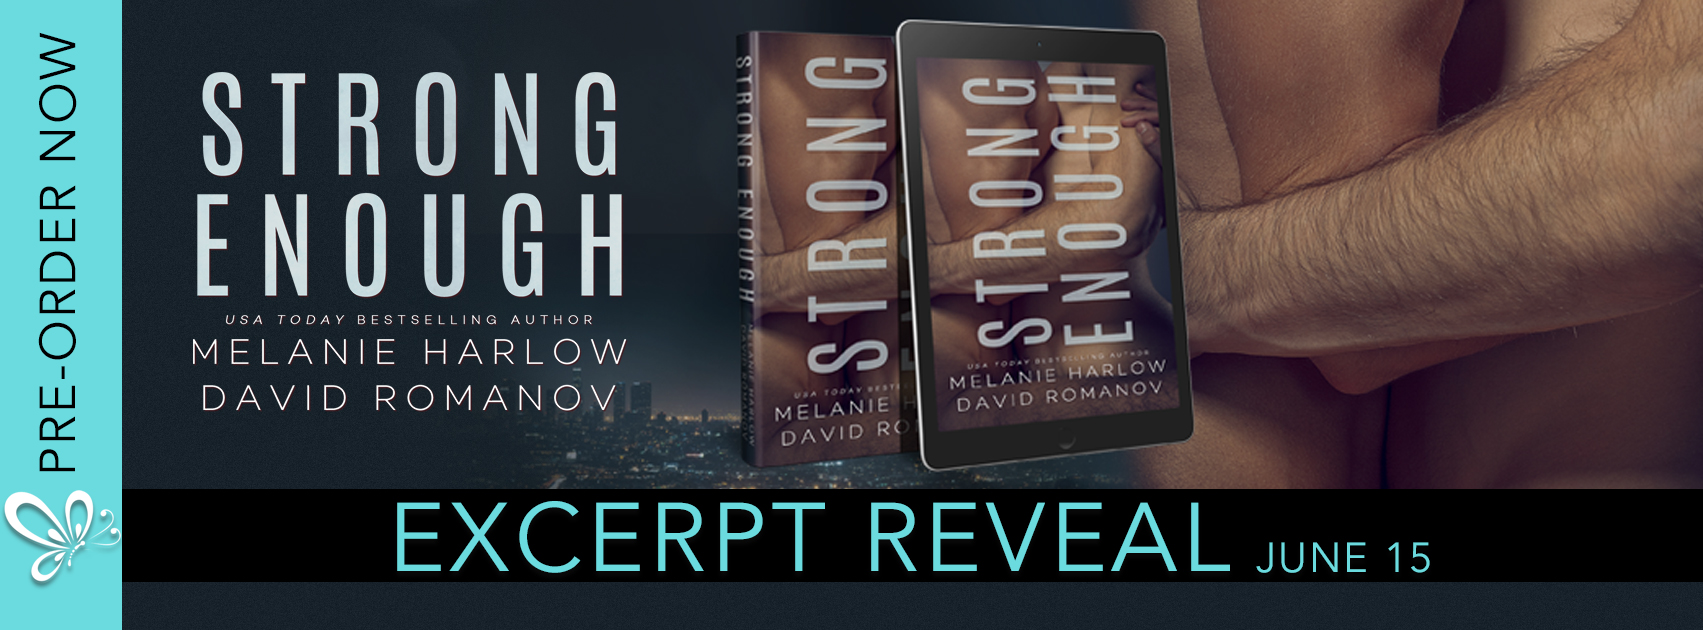 Excerpt Reveal: Strong Enough by Melanie Harlow